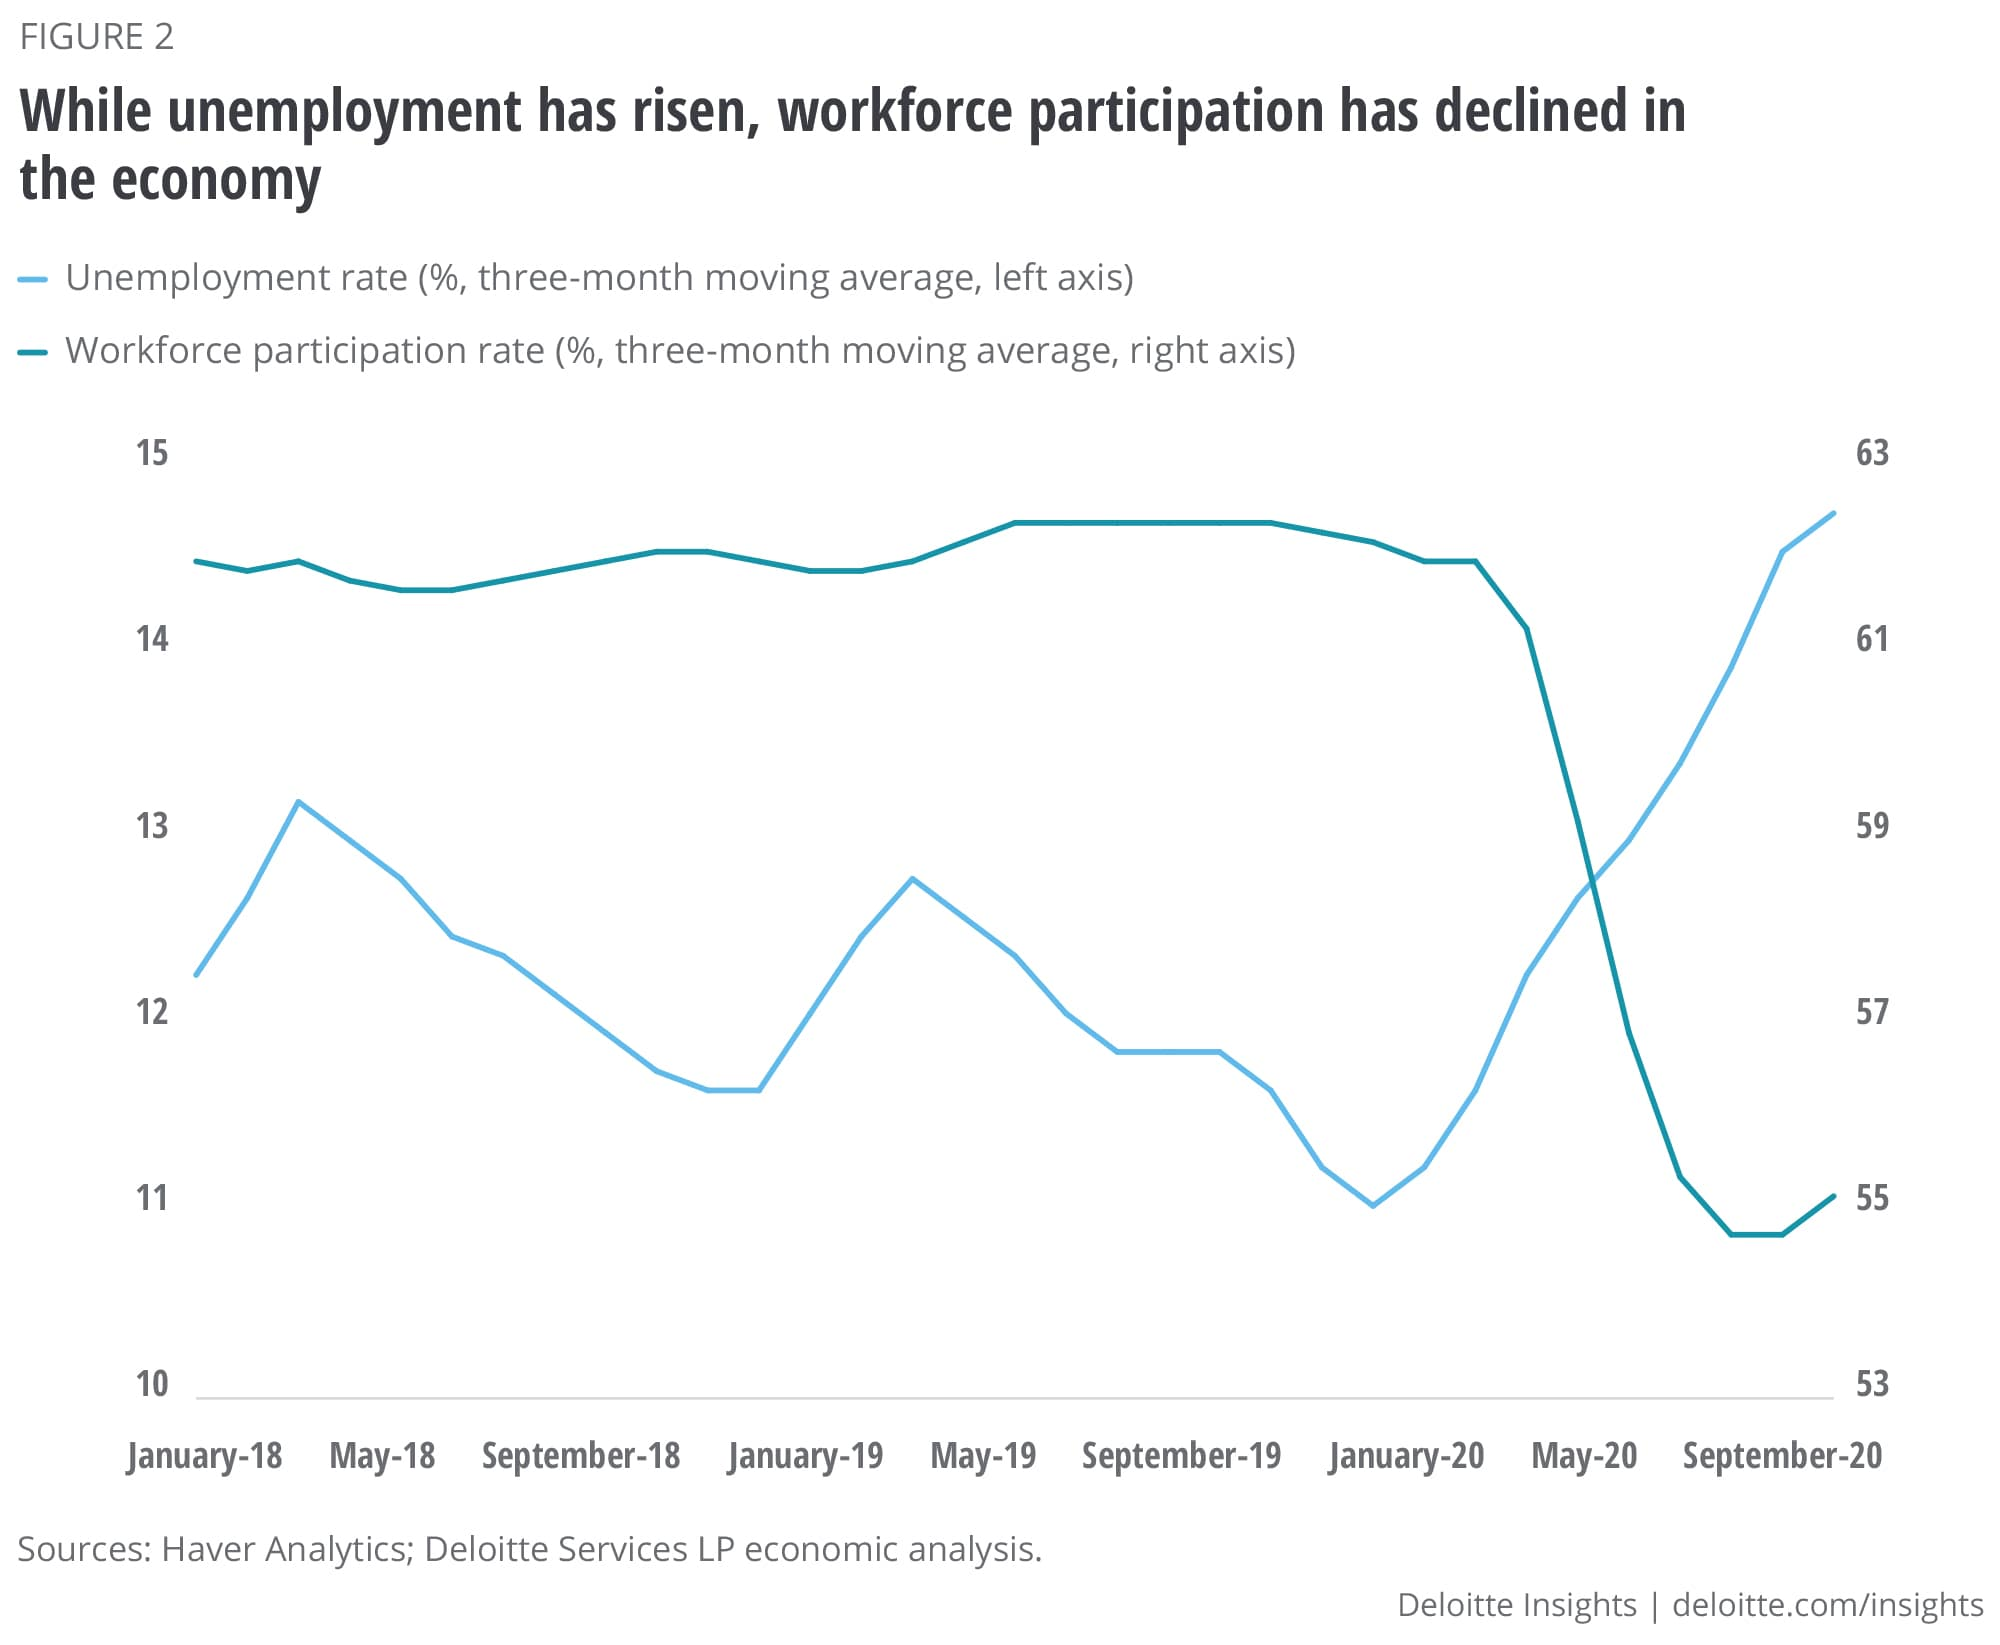 While unemployment has risen, workforce participation has declined in the economy